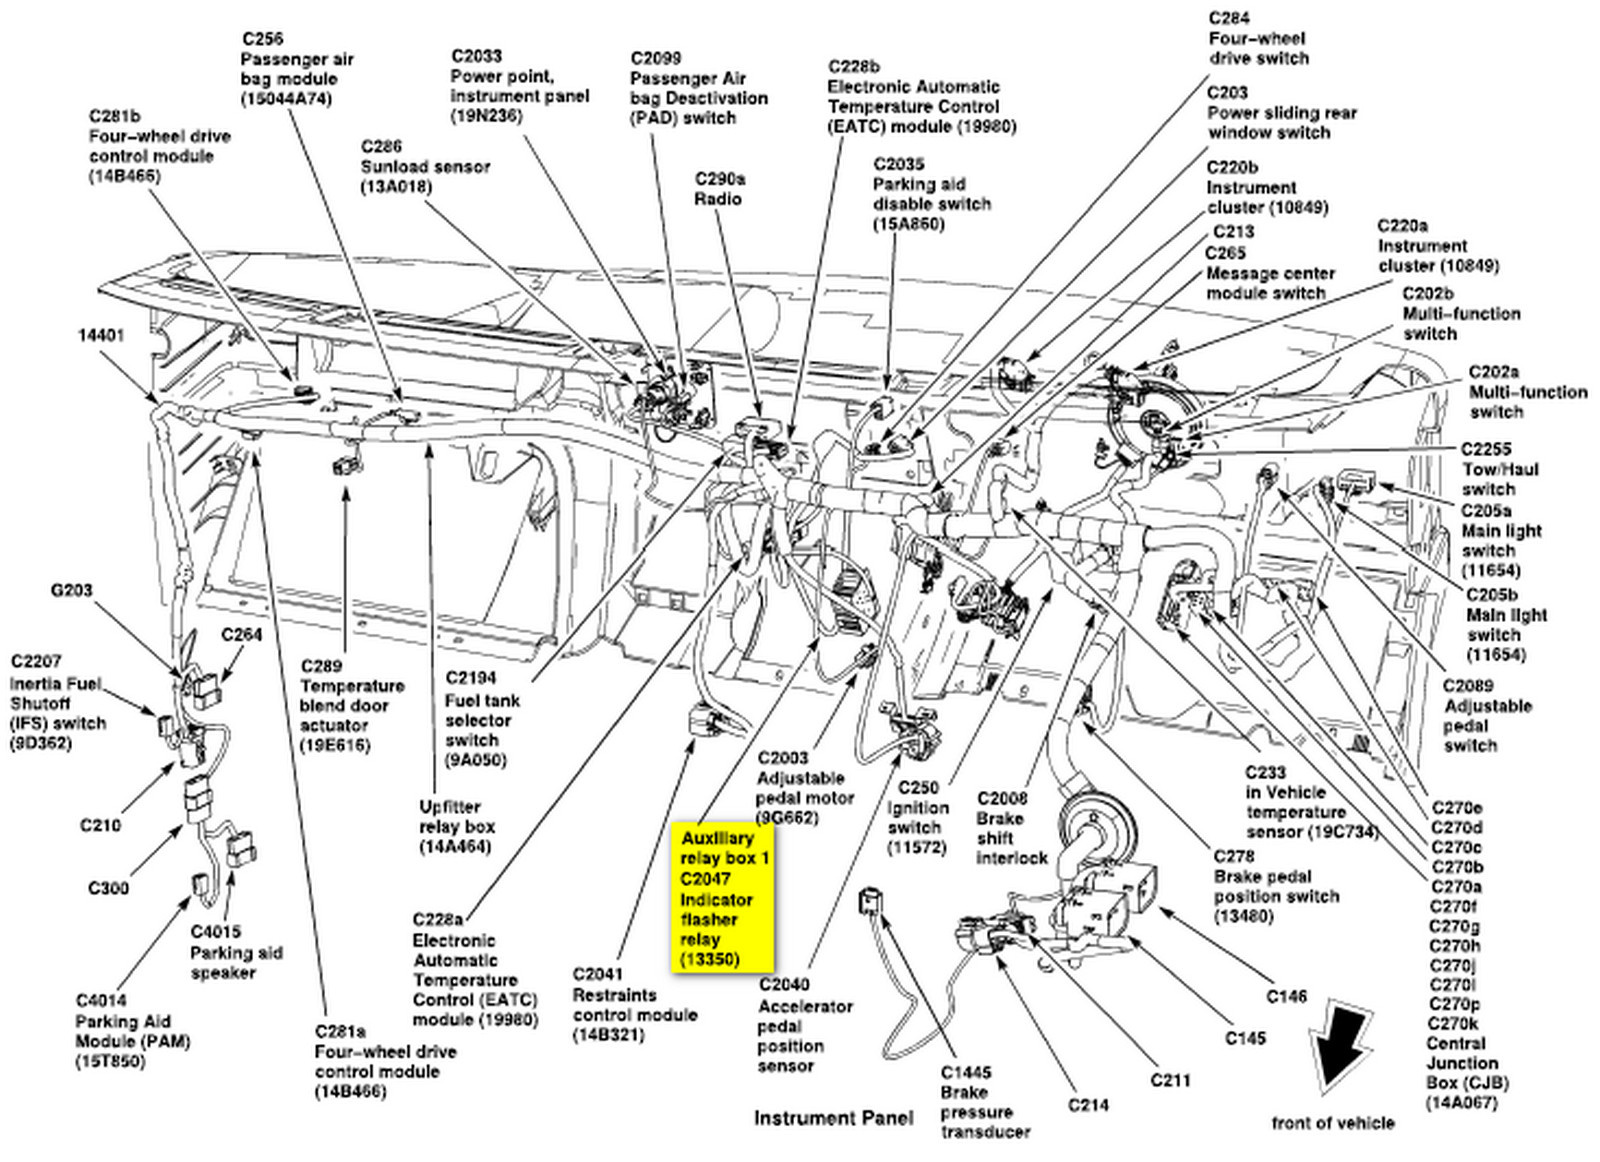 1969 ford f 250 turn signal wiring diagram